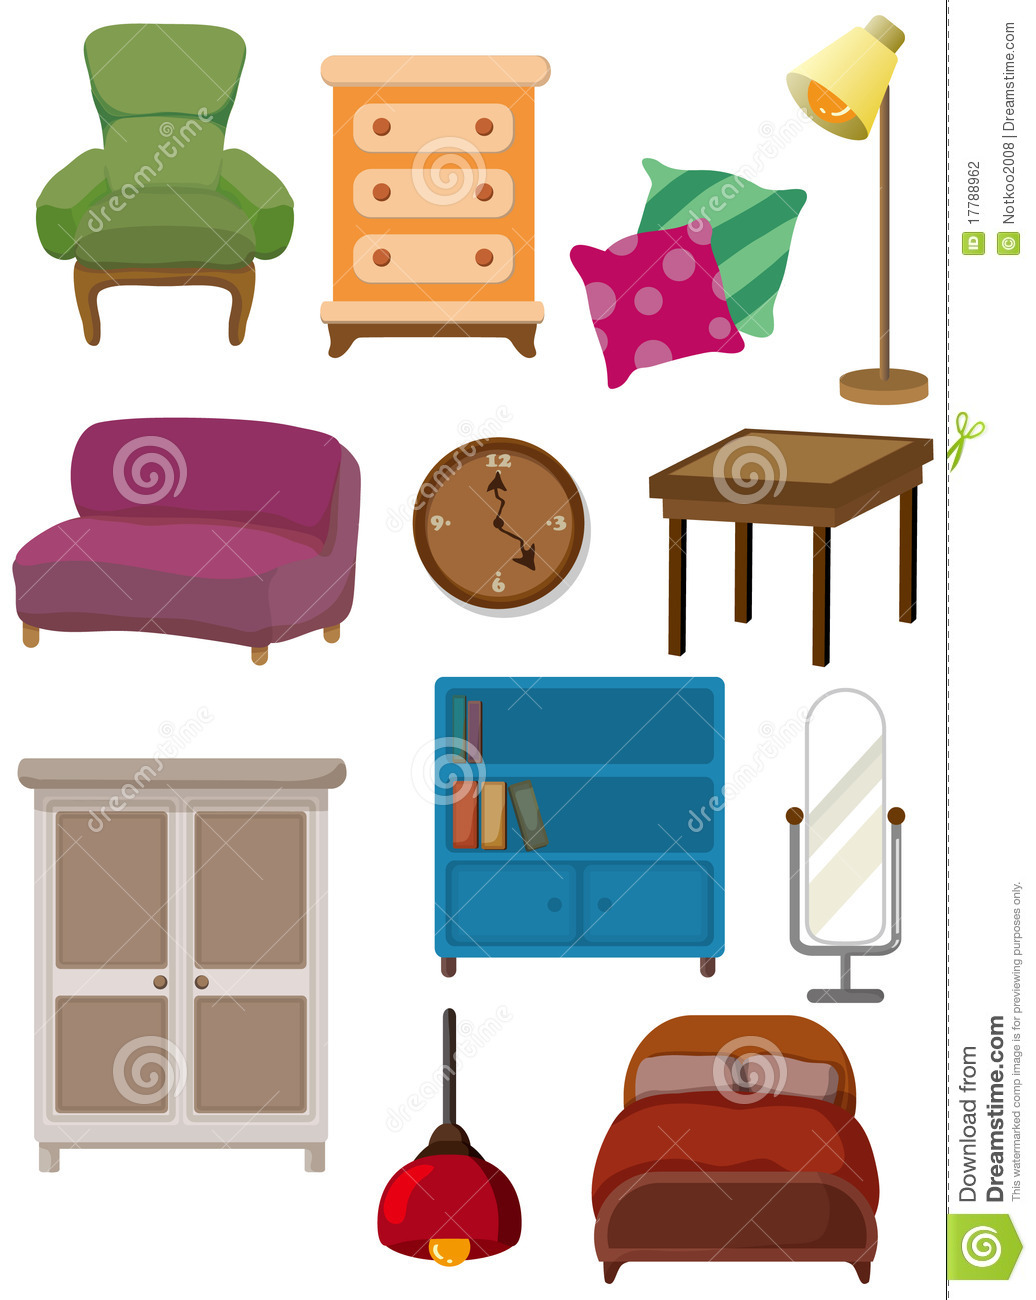 graphisme de meubles de dessin anim photographie stock image 17788962. Black Bedroom Furniture Sets. Home Design Ideas